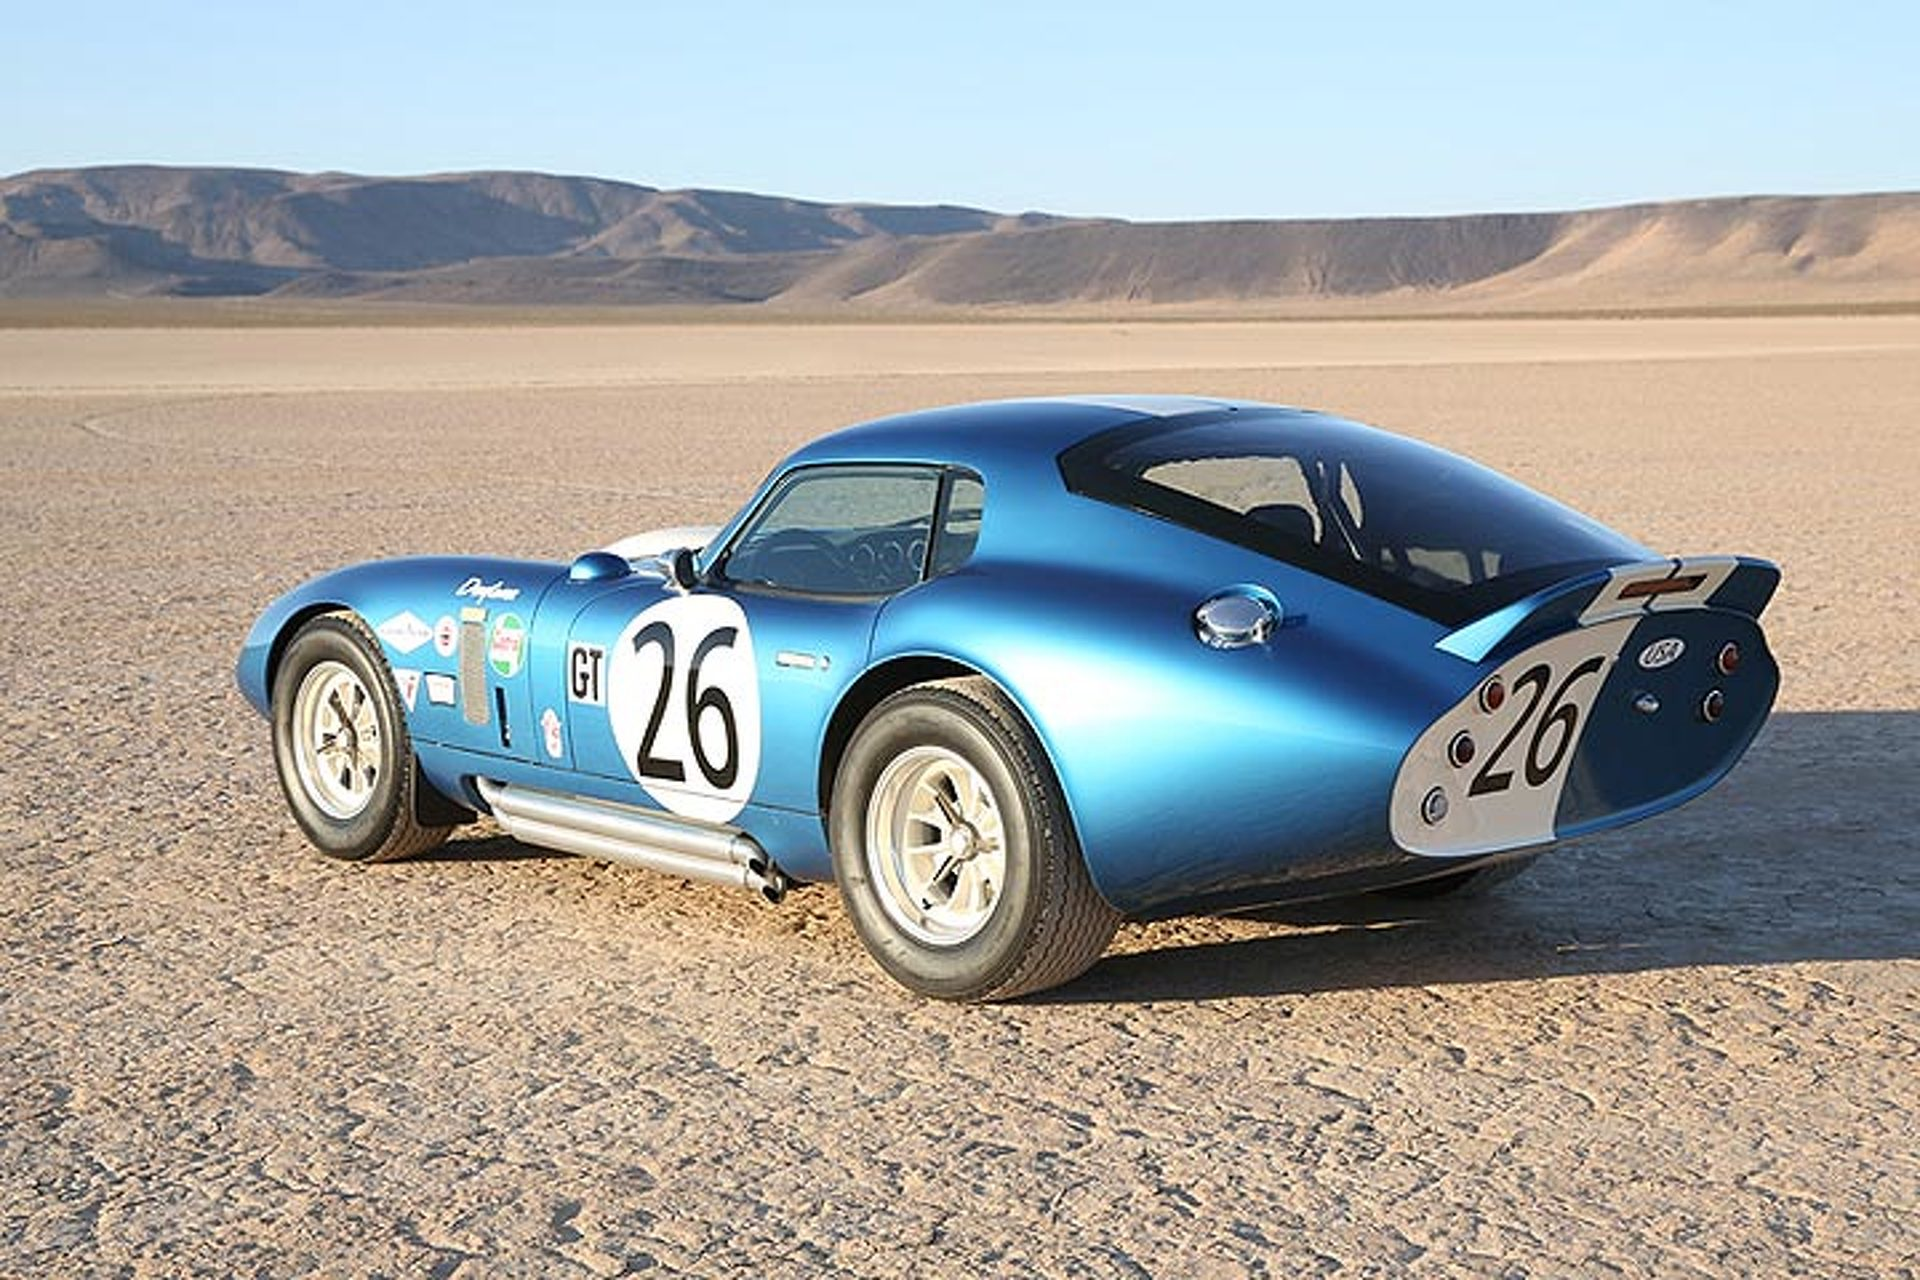 The Shelby Daytona is Back and Celebrates 50 Iconic Years